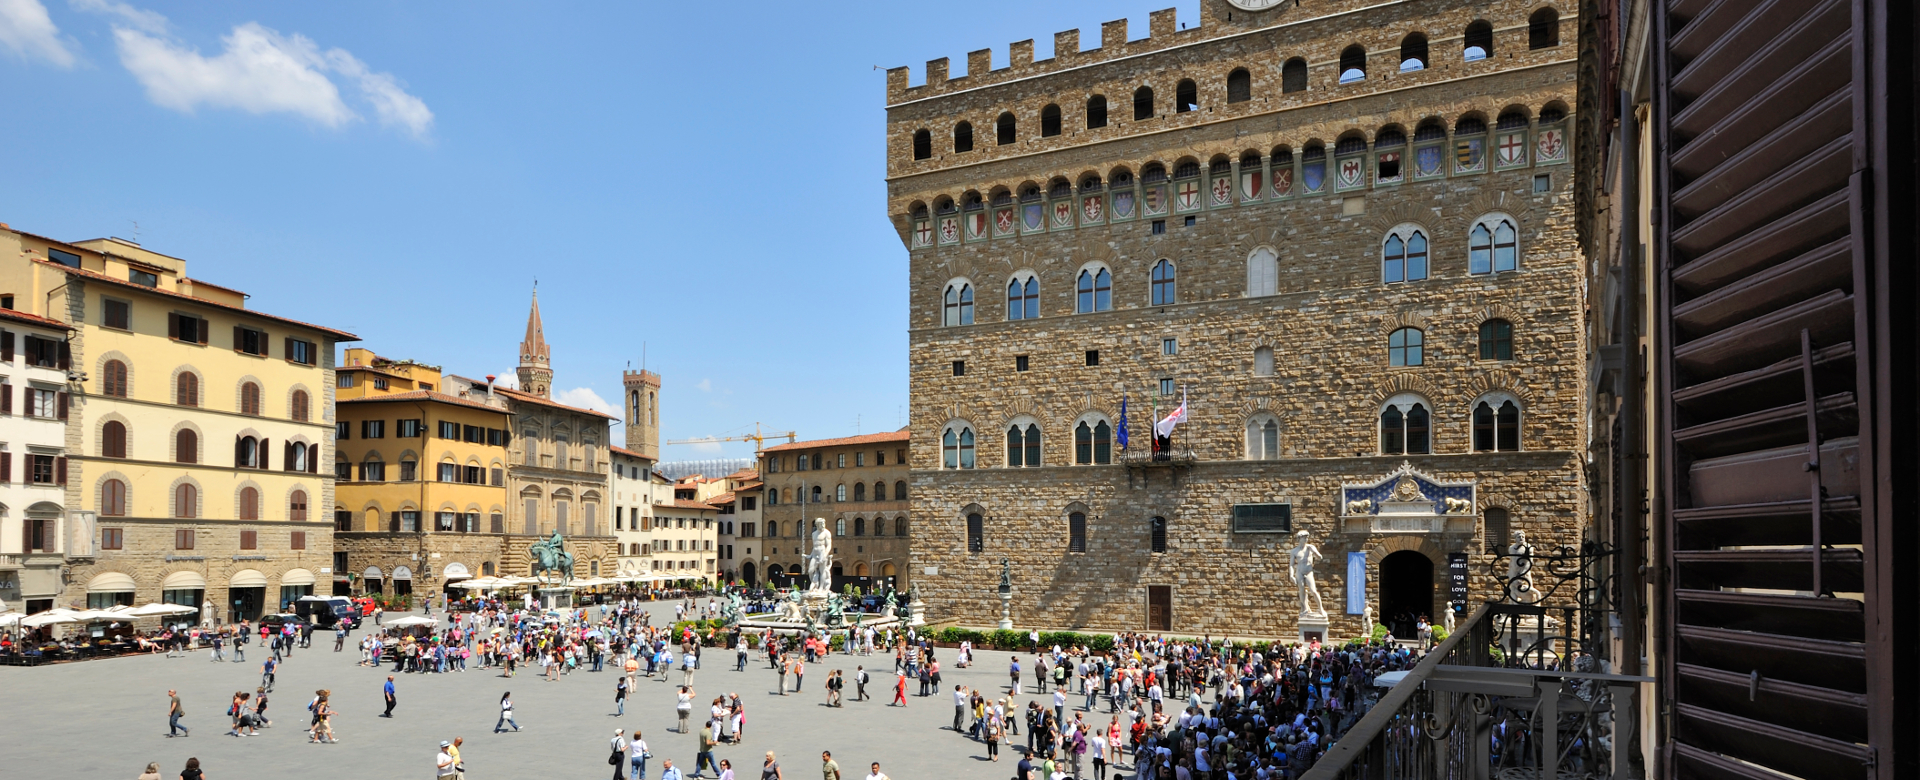 On the traces of the Battle of Anghiari at Palazzo Vecchio